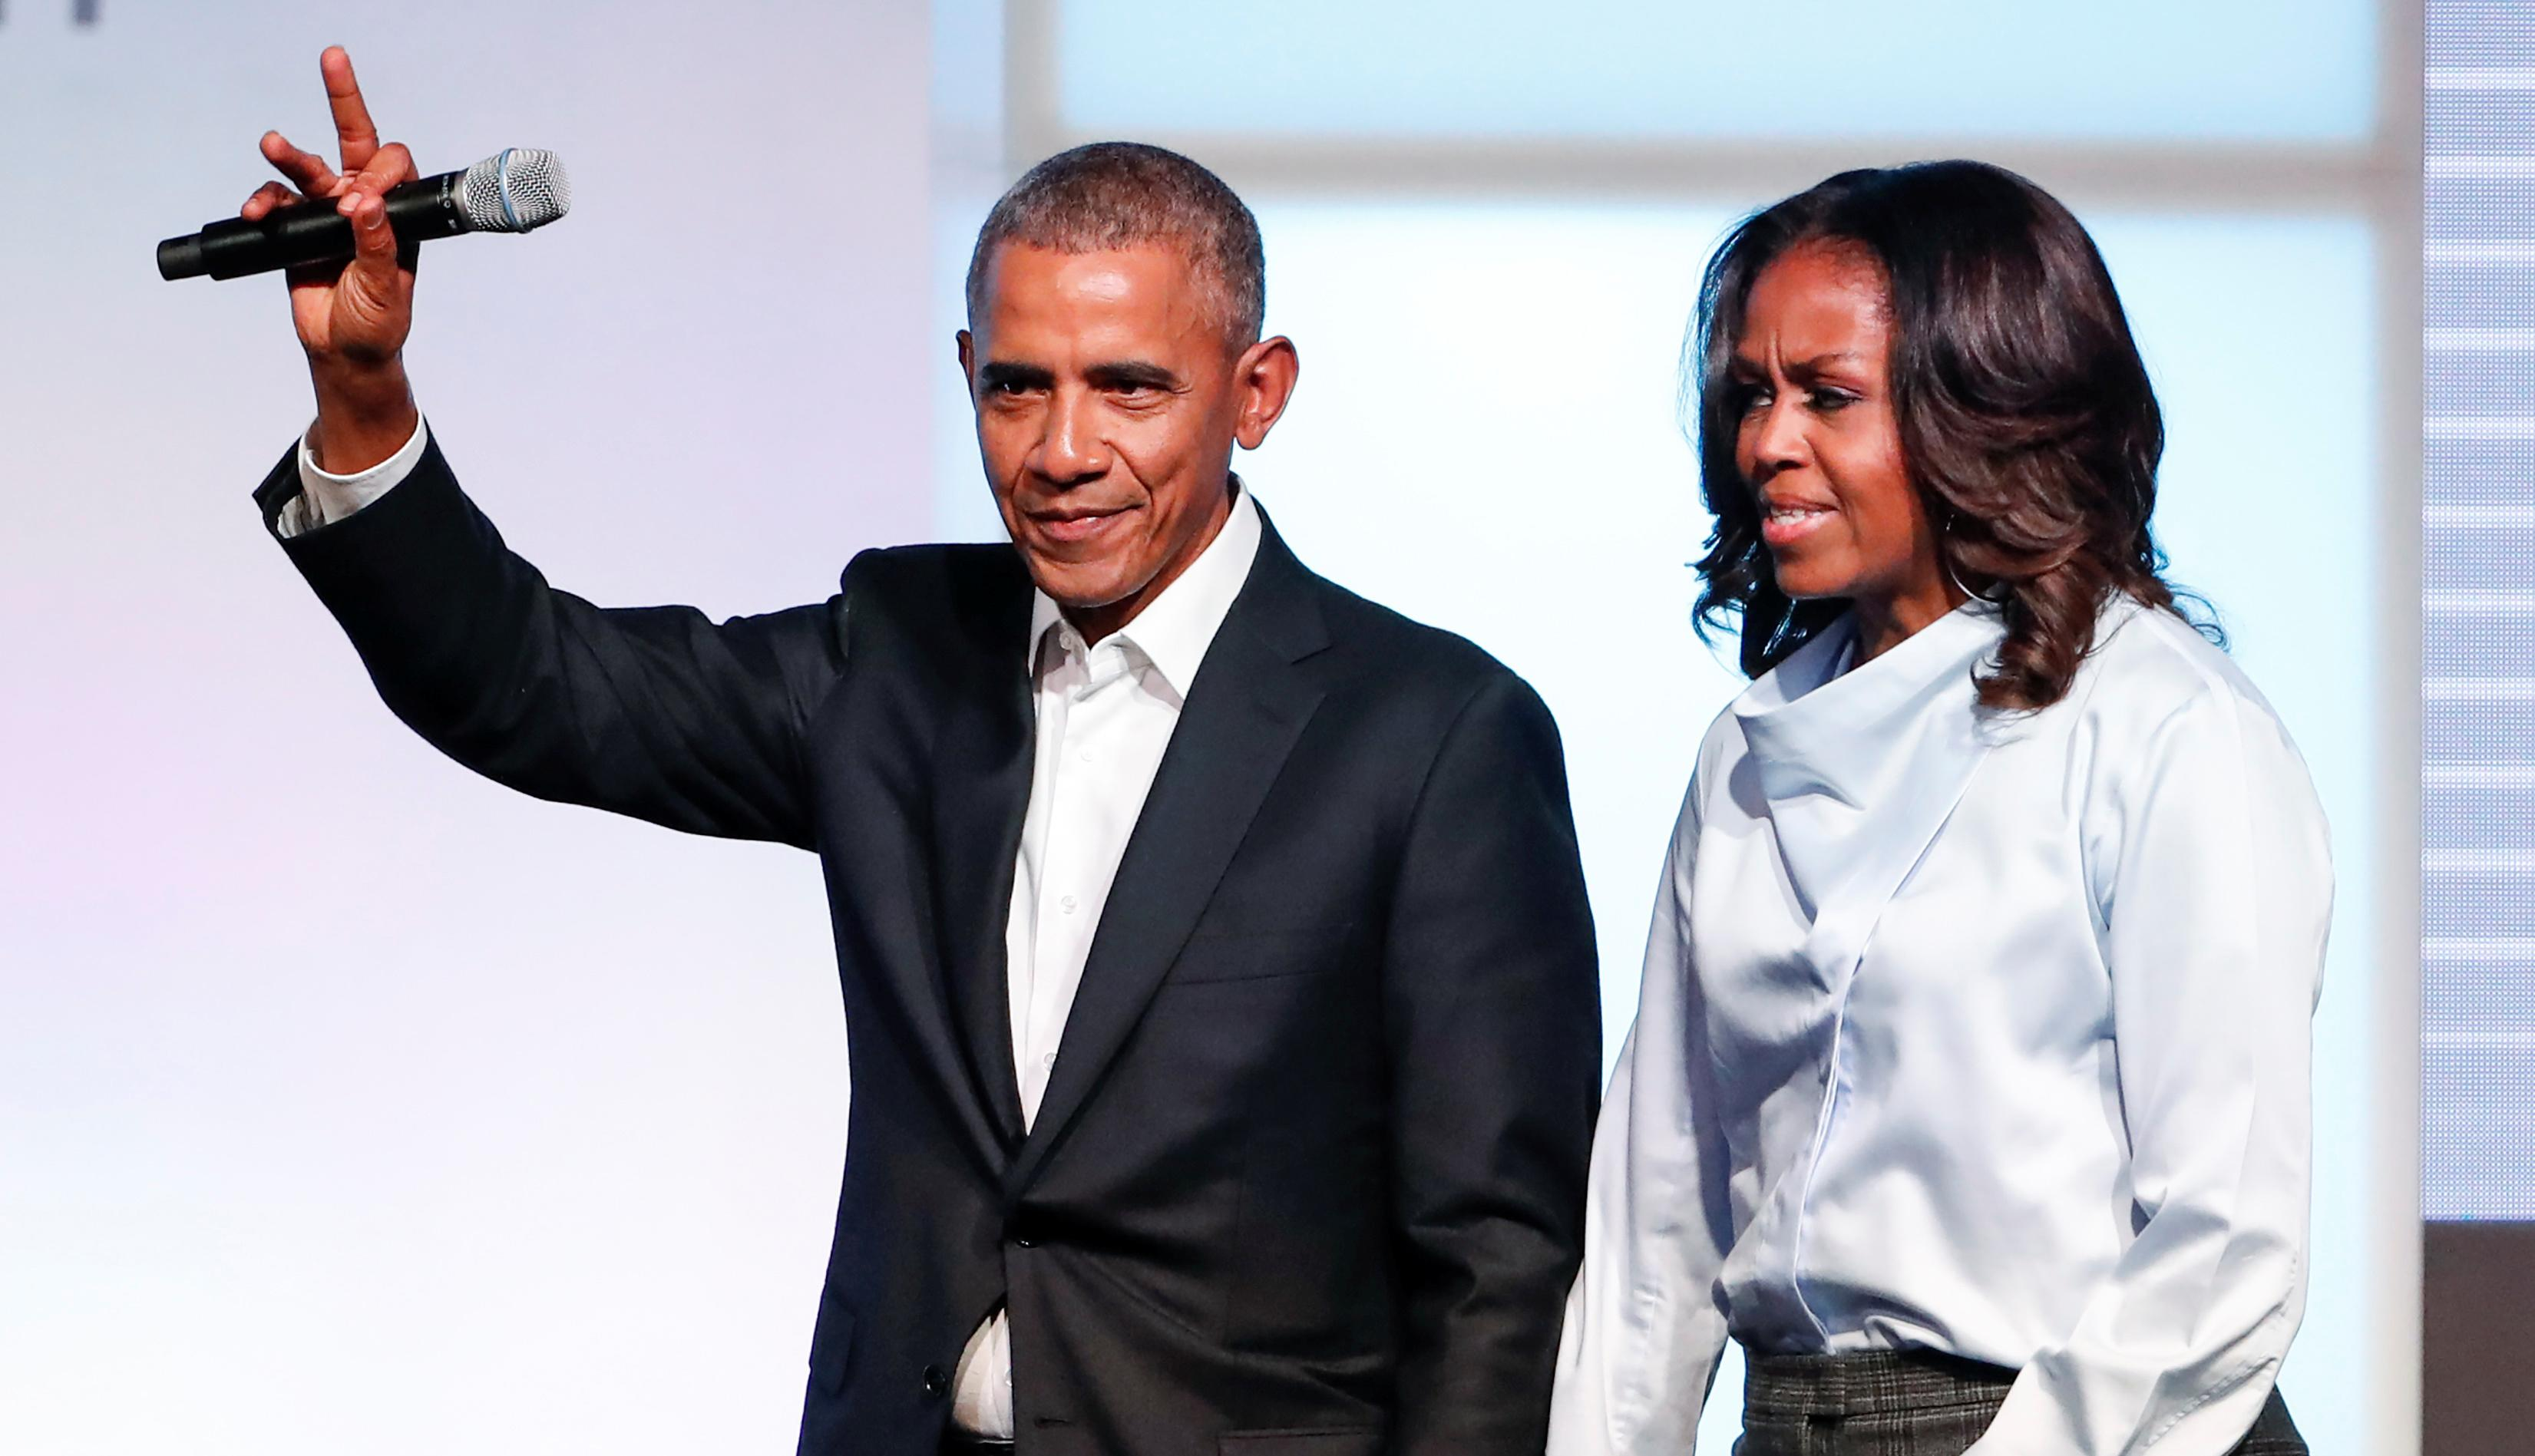 Obamas pen letter to Parkland students: 'You've helped awaken the conscience of the nation'